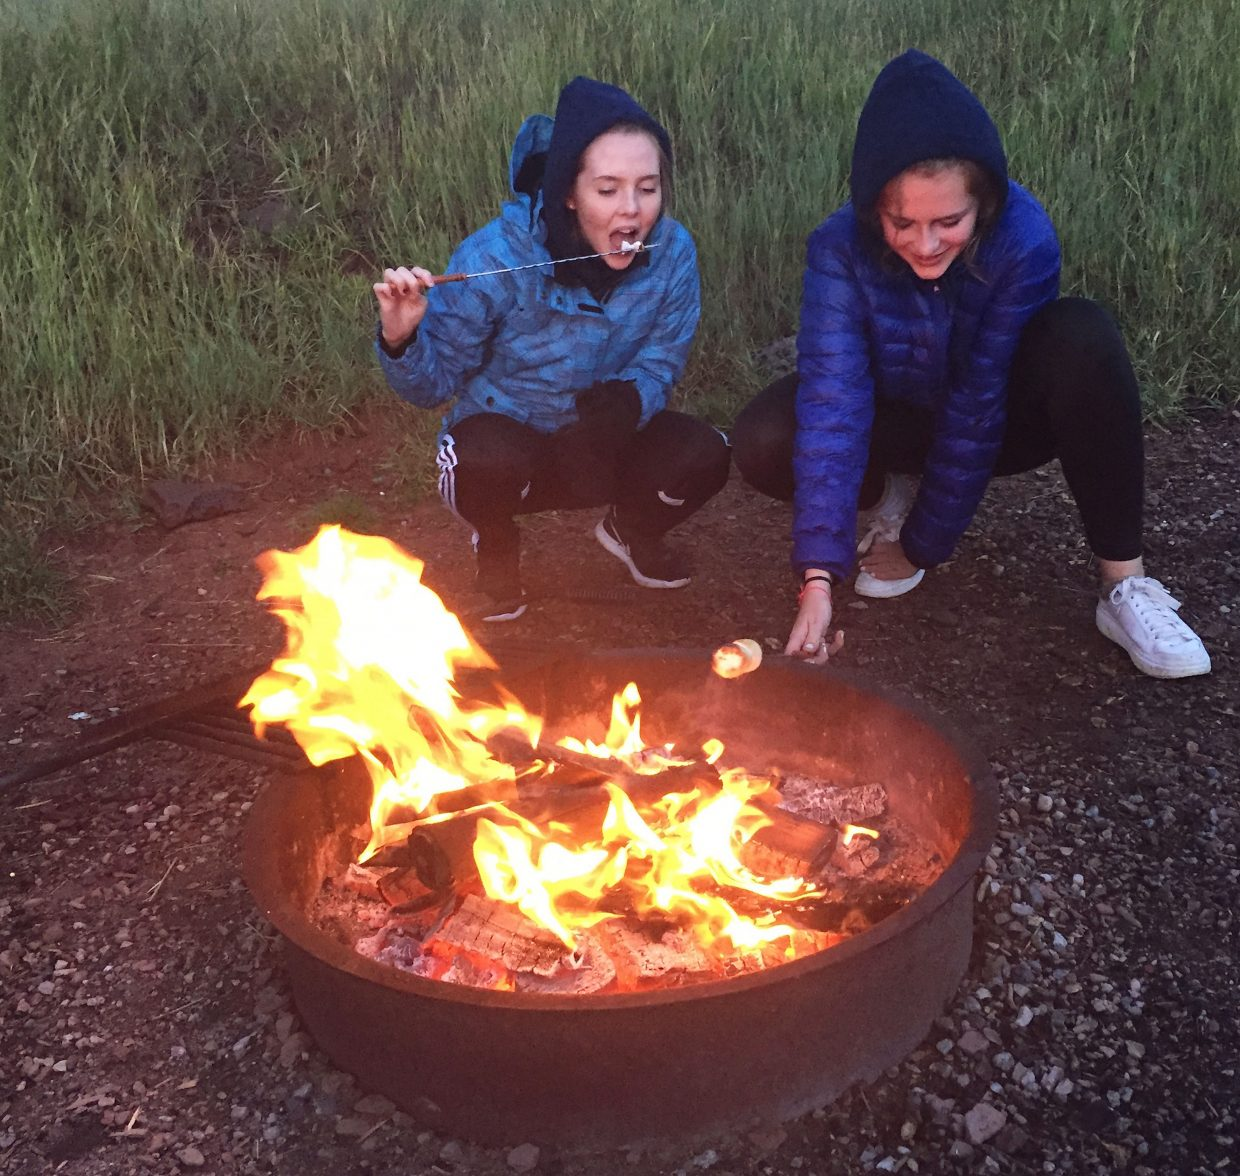 Camila, left, and Sophie, exchange students from Norway and Germany, respectively, enjoy their first taste of roasted marshmallows around the campfire over Labor Day weekend.